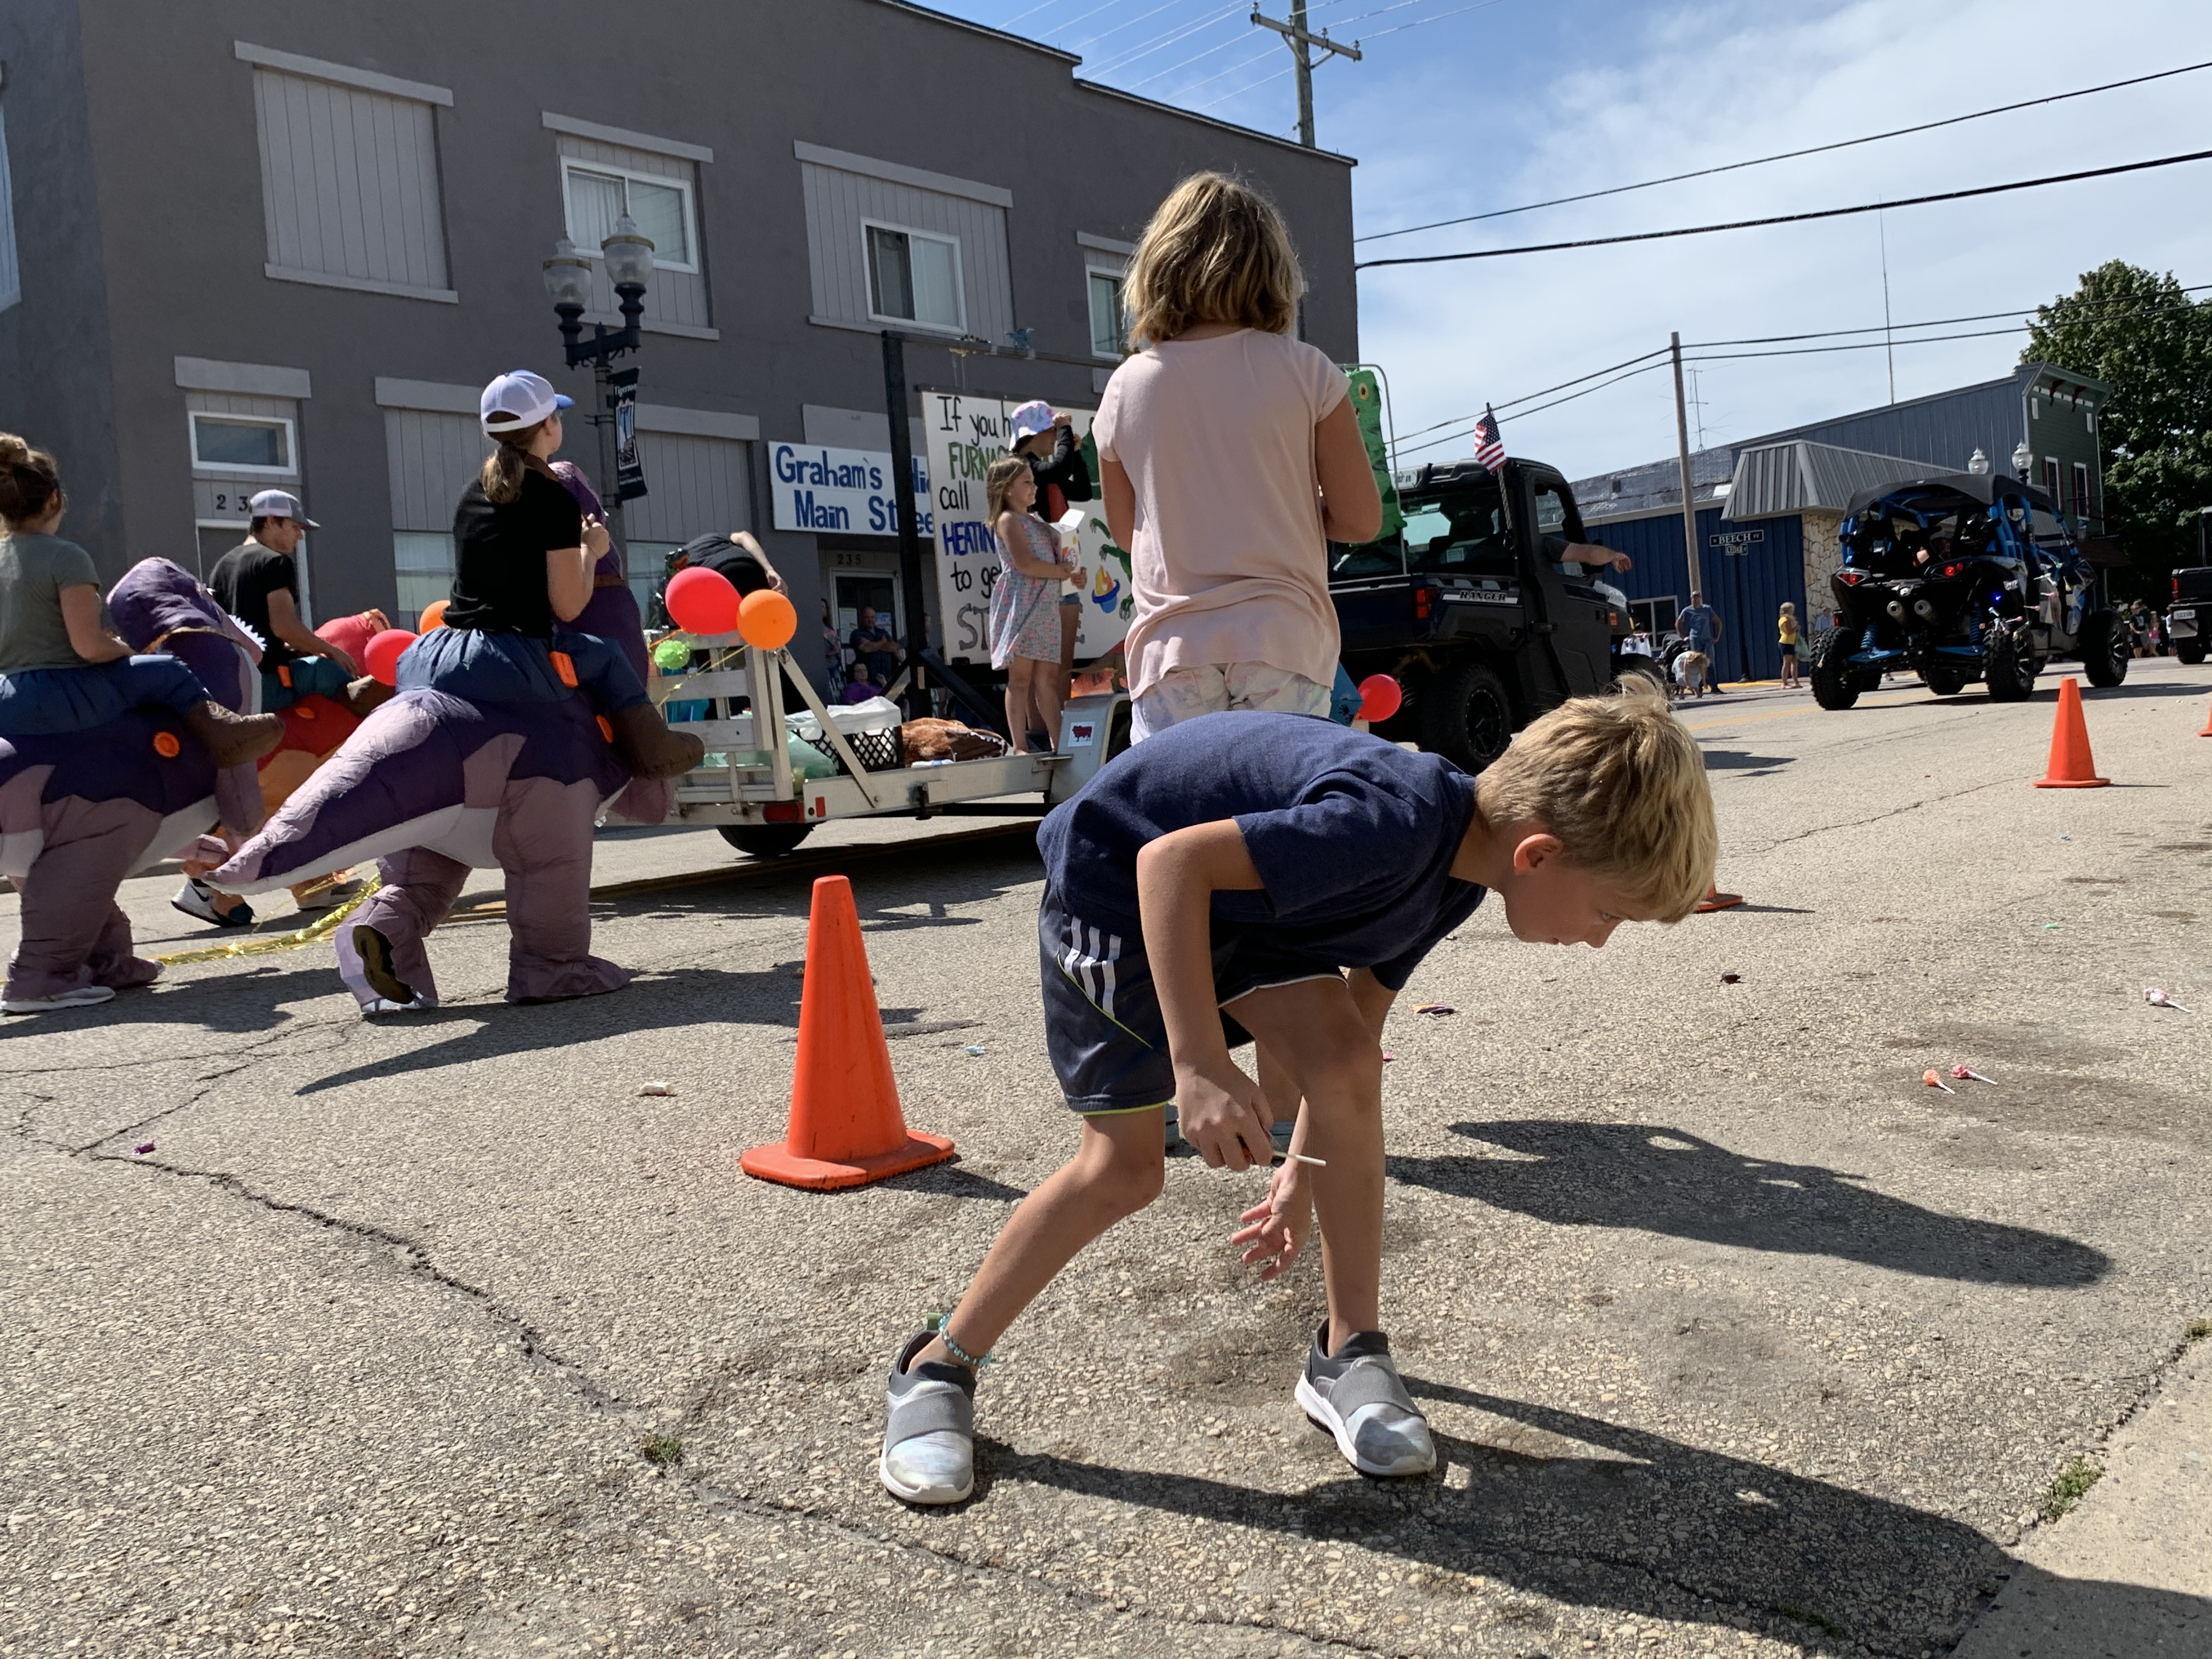 Neenah residents Remi Marta, front, and his sister Josie, back, race for candy as people in various floats toss it toward the crowd during the Lumberjack Days parade on Aug. 29.Luke Reimer | NEW Media